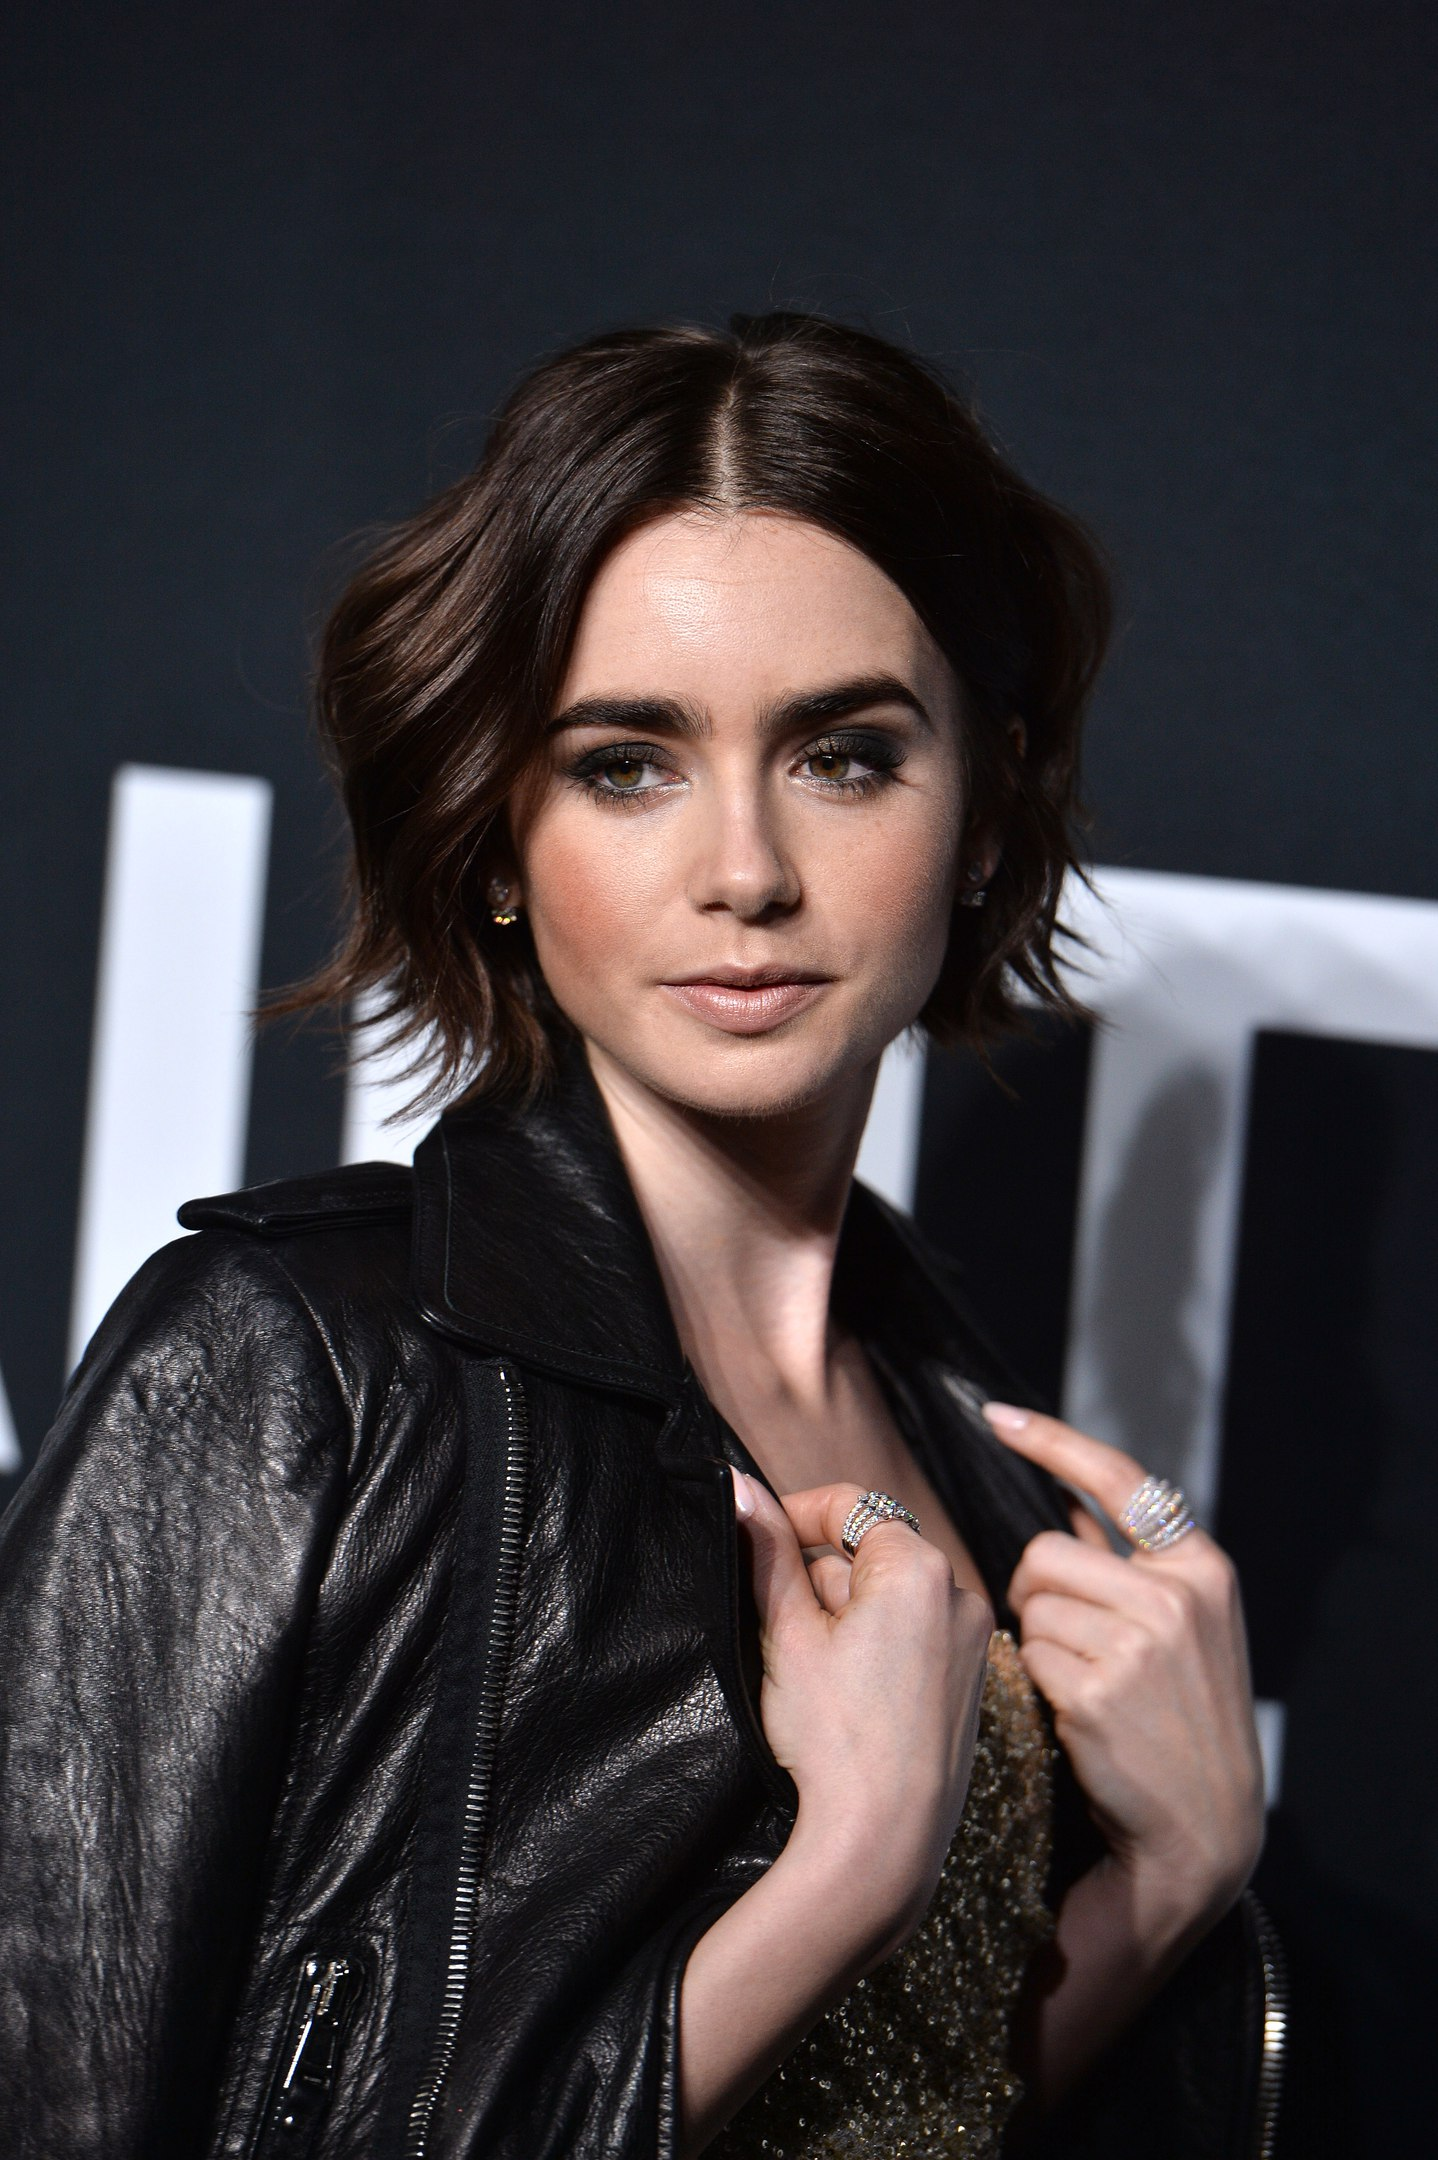 Lily Collins Picture 36 - Hot Girls Wallpaper